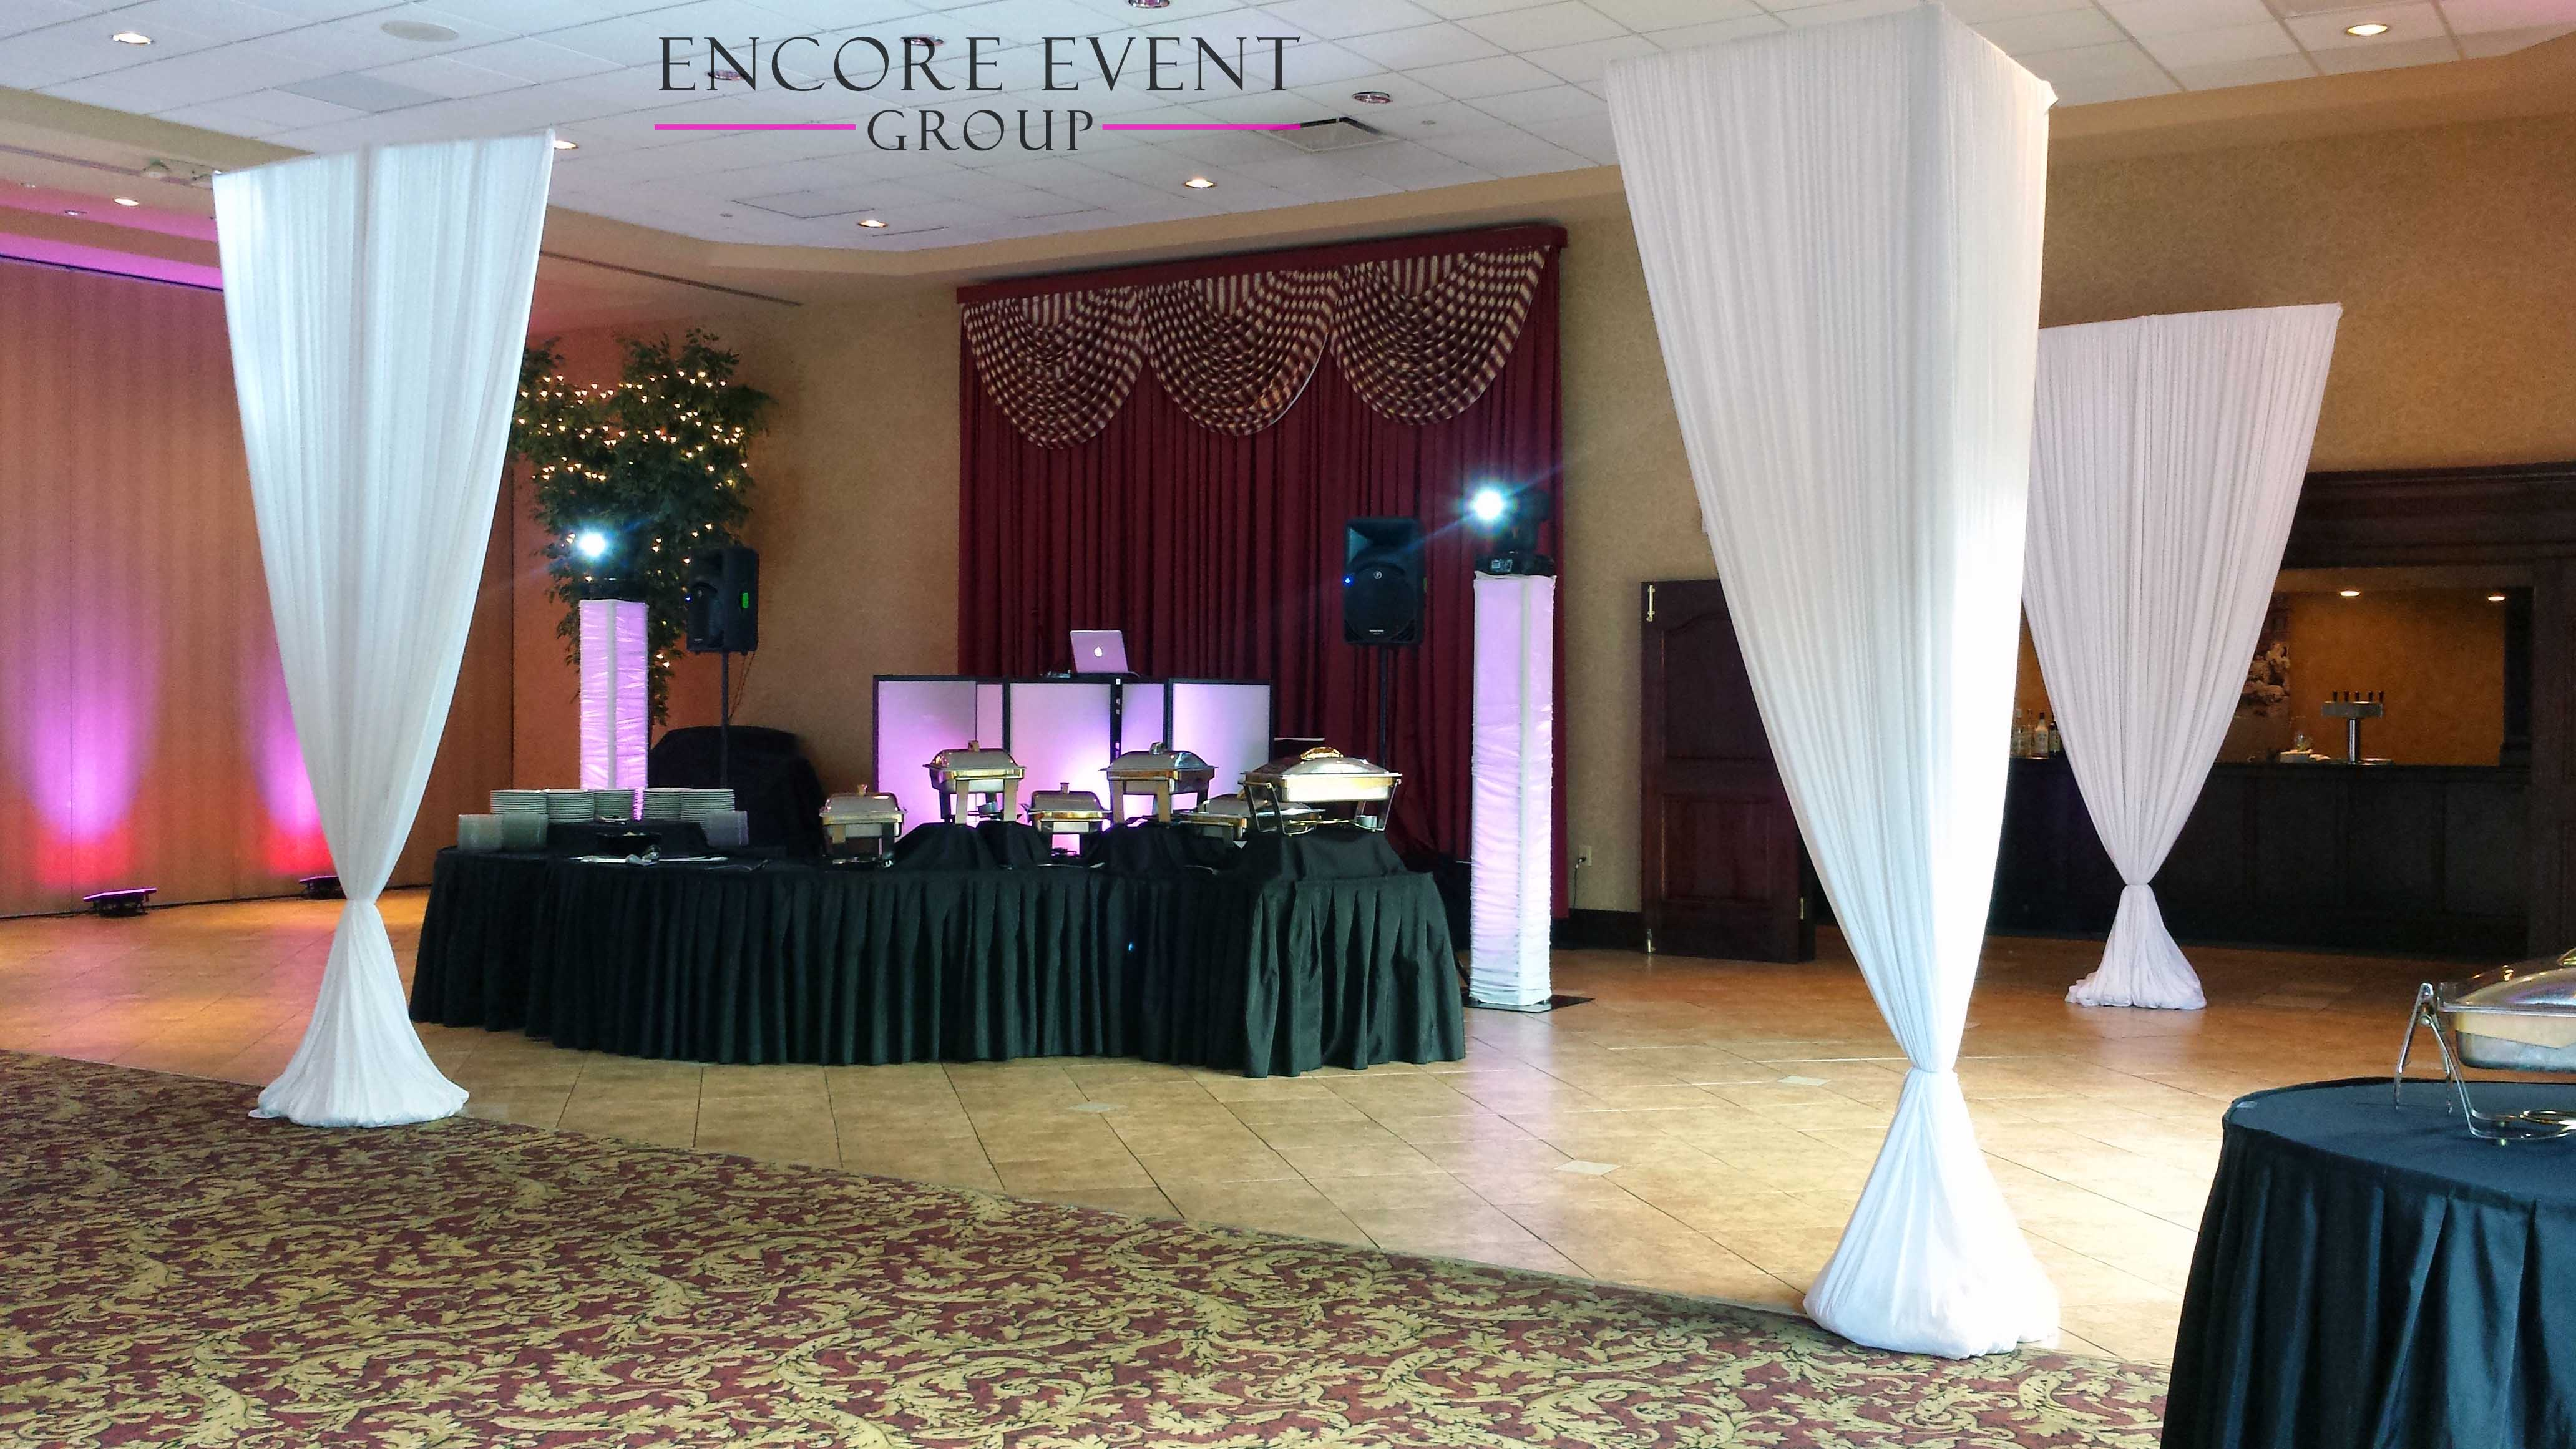 sequin gorgeous drape table pipe pin in drapes rose to gold sweetheart half and moon draping backdrop a